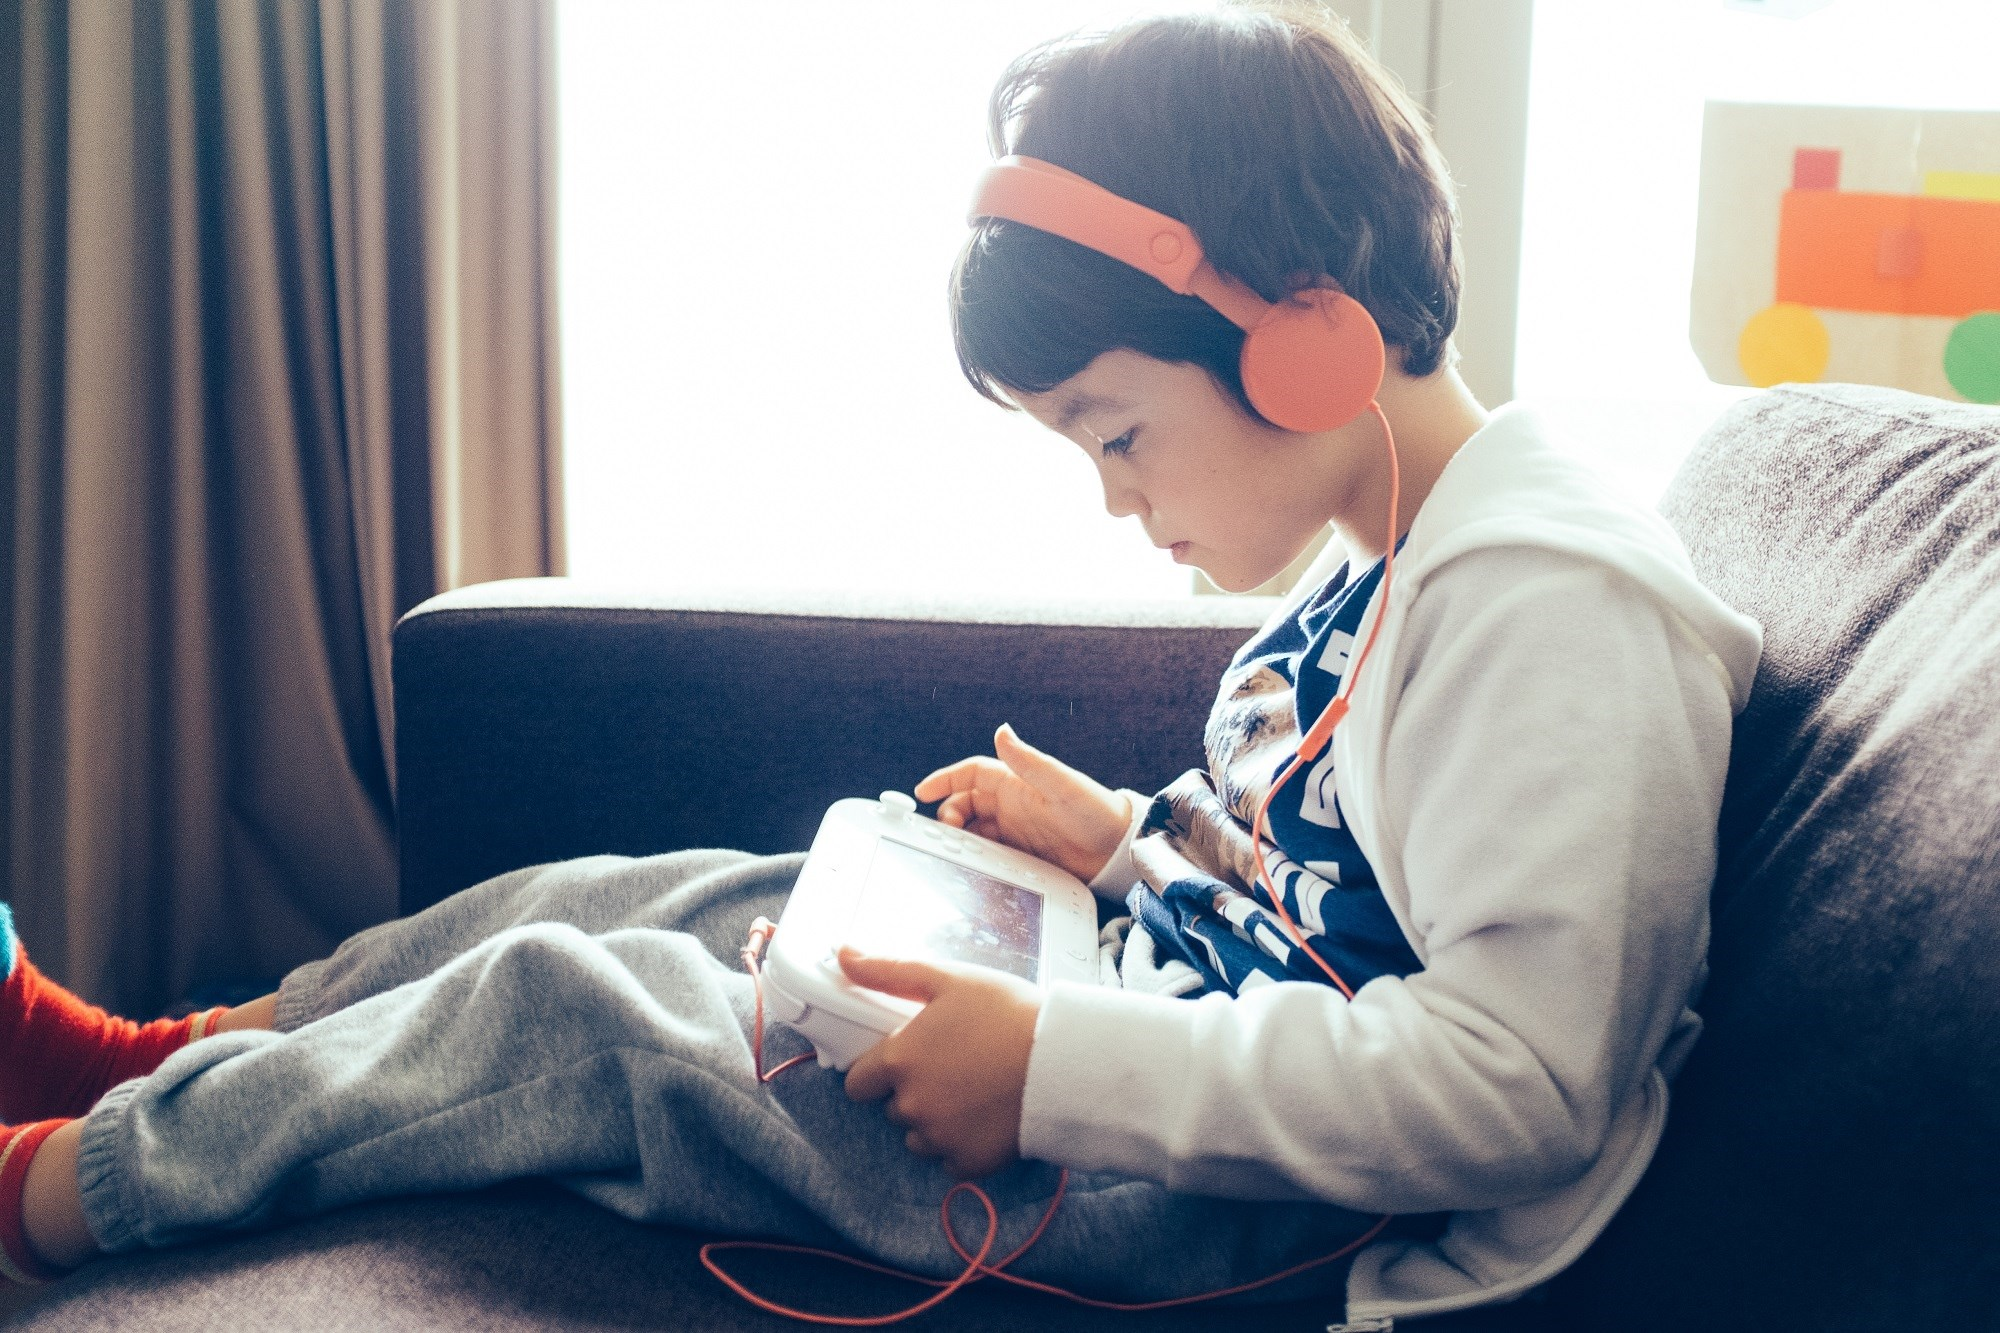 Children aged 8 to 11 years should be physically active for ≥1 hour per day, engage in recreational screen time for ≤2 hours per day, and sleep for 9 to 11 hours per night.